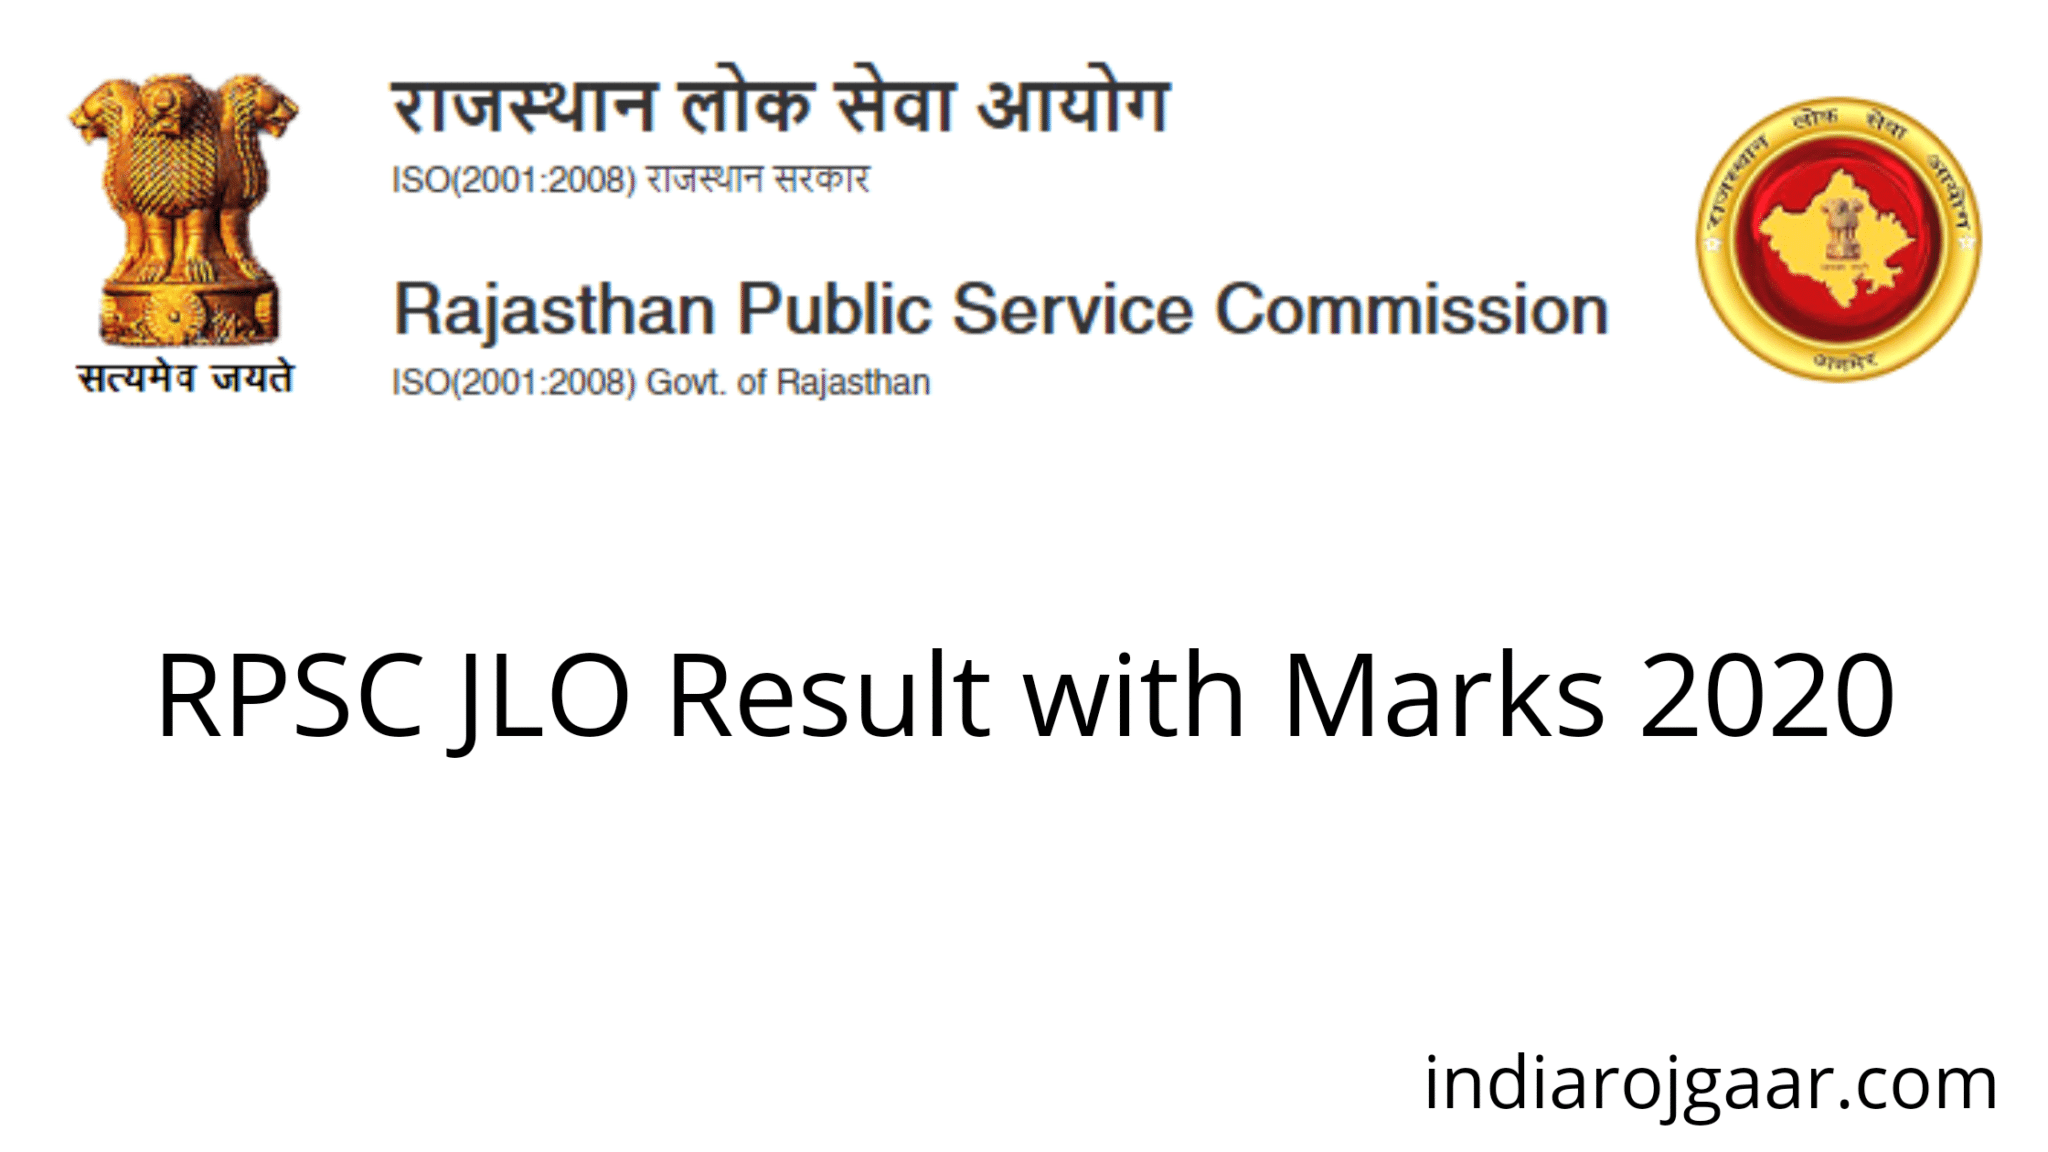 RPSC JLO Result with Marks 2020